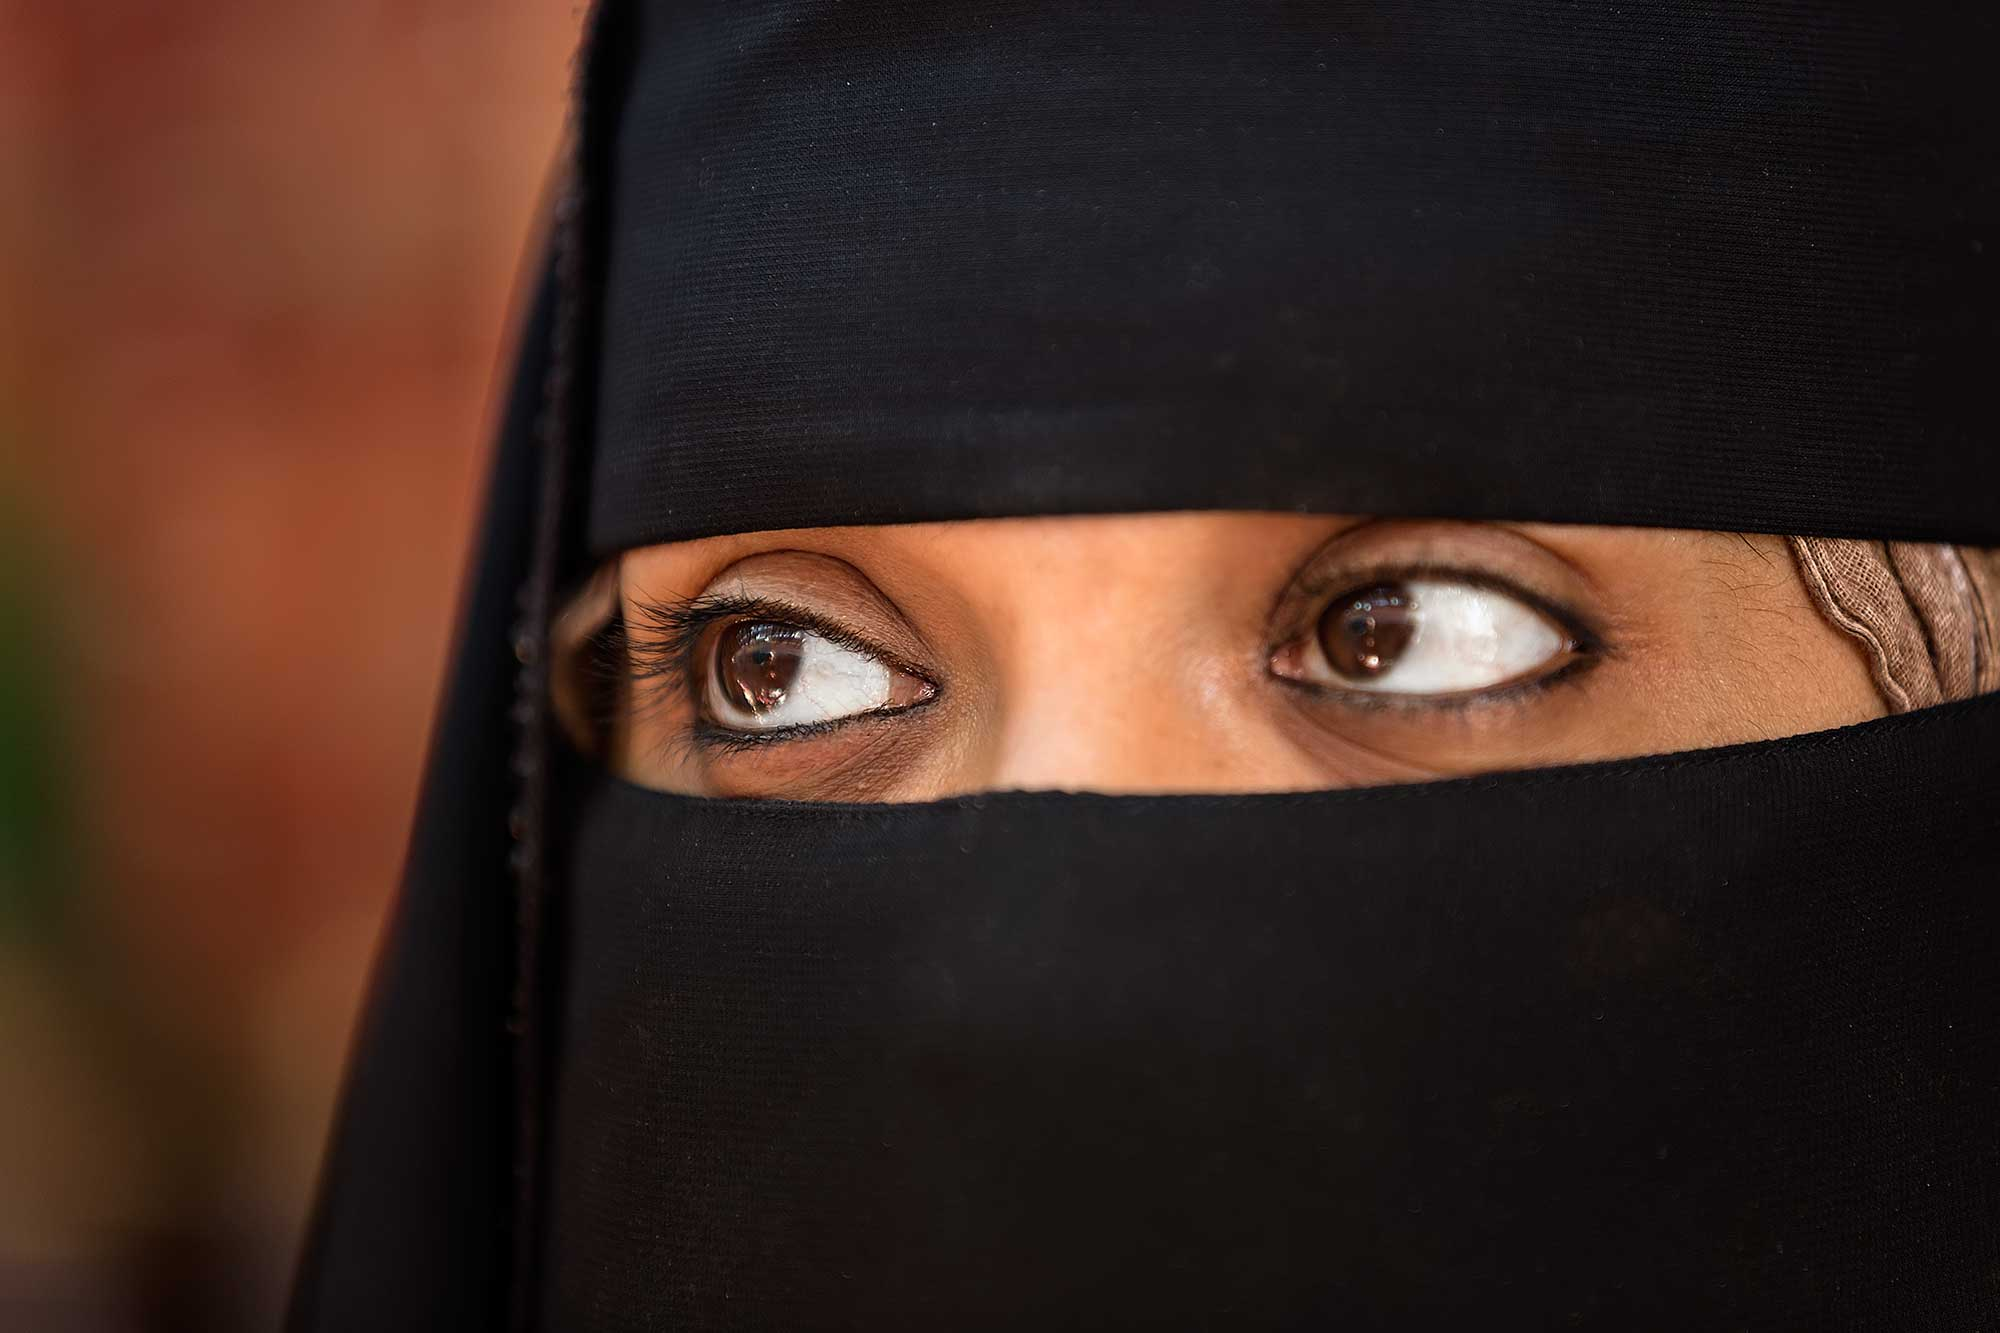 The eyes of a Muslim woman in Salalah. © Ulli Maier & Nisa Maier